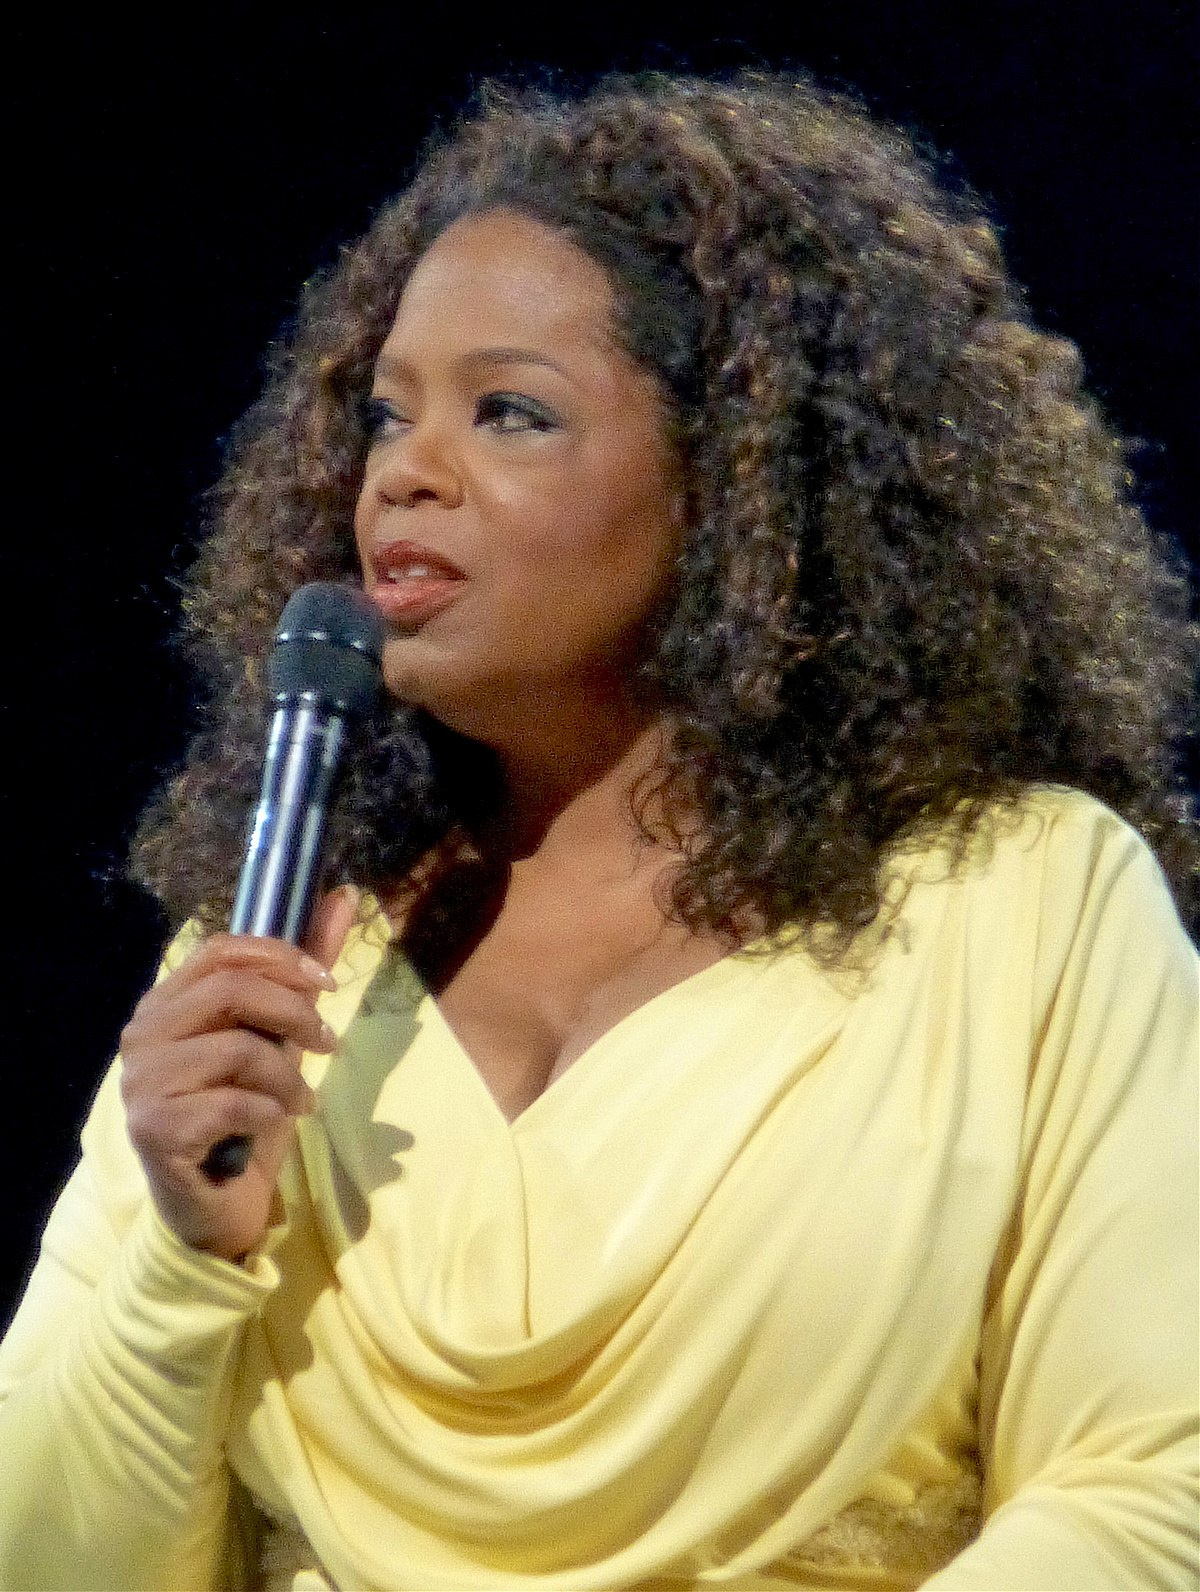 oprah Short bio oprah was born january 29, 1954 in kosciusko, mississippi her professional career started in 1983, when she hosted morning talk show am chicagodue to huge success, the show was renamed the oprah winfrey show, expanded in time, and broadcasted nationally in 1986winfrey also appeared in several movies, such as the color purple, lincoln and 2013 film the butler.